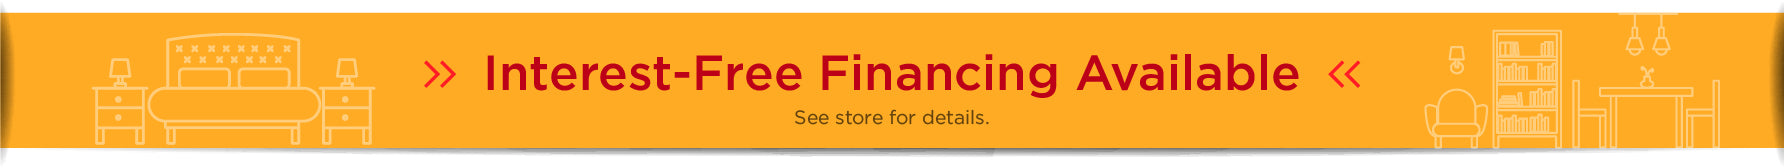 Interest-free financing available